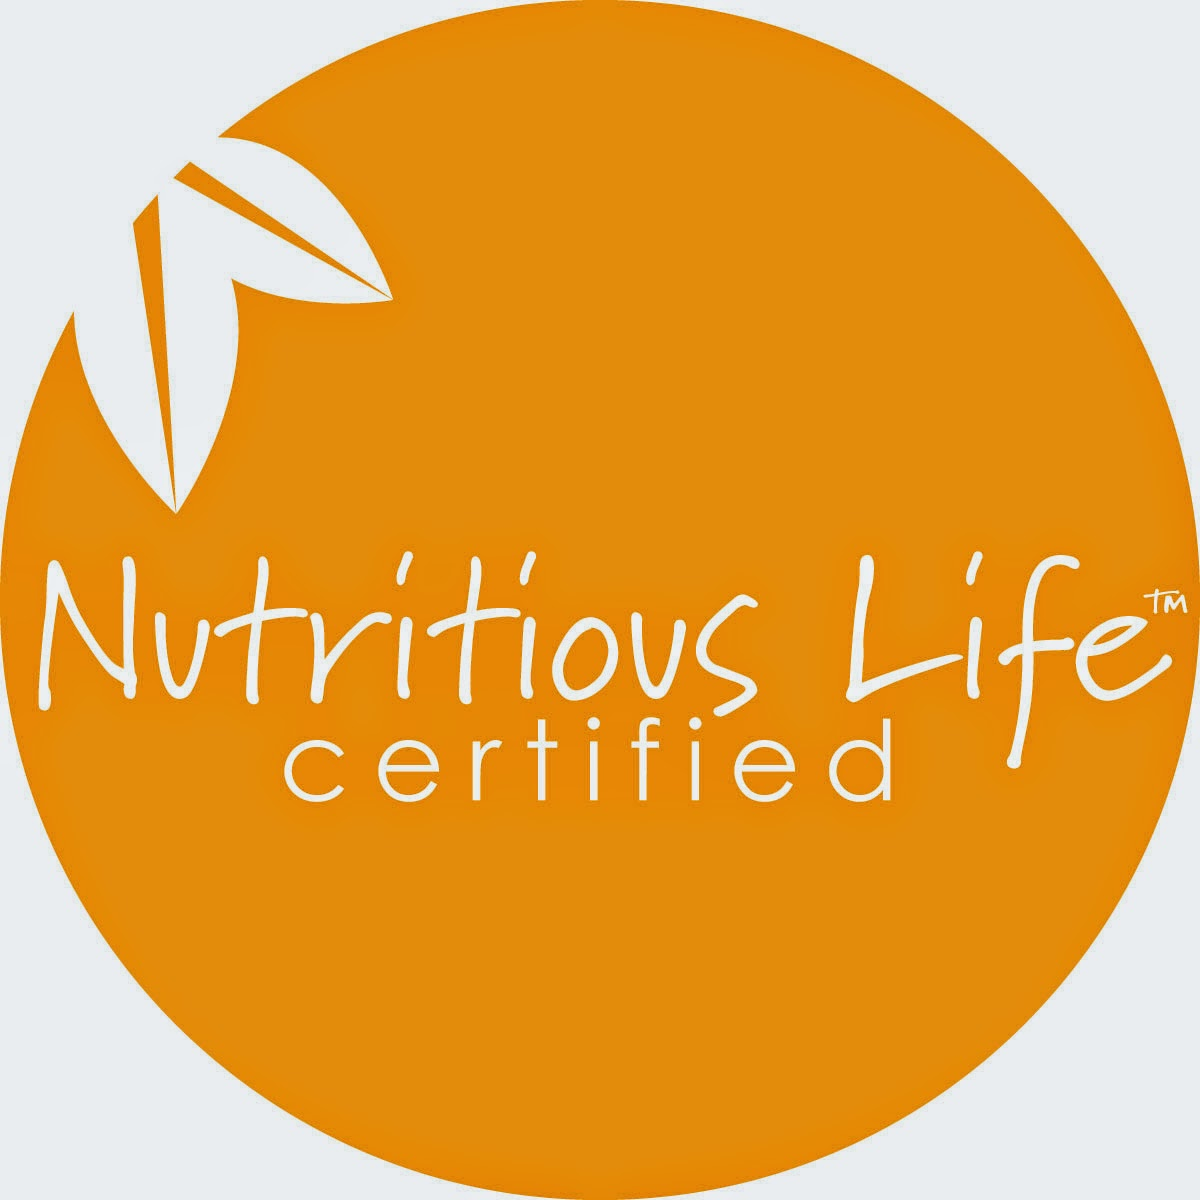 Nutrition Certification